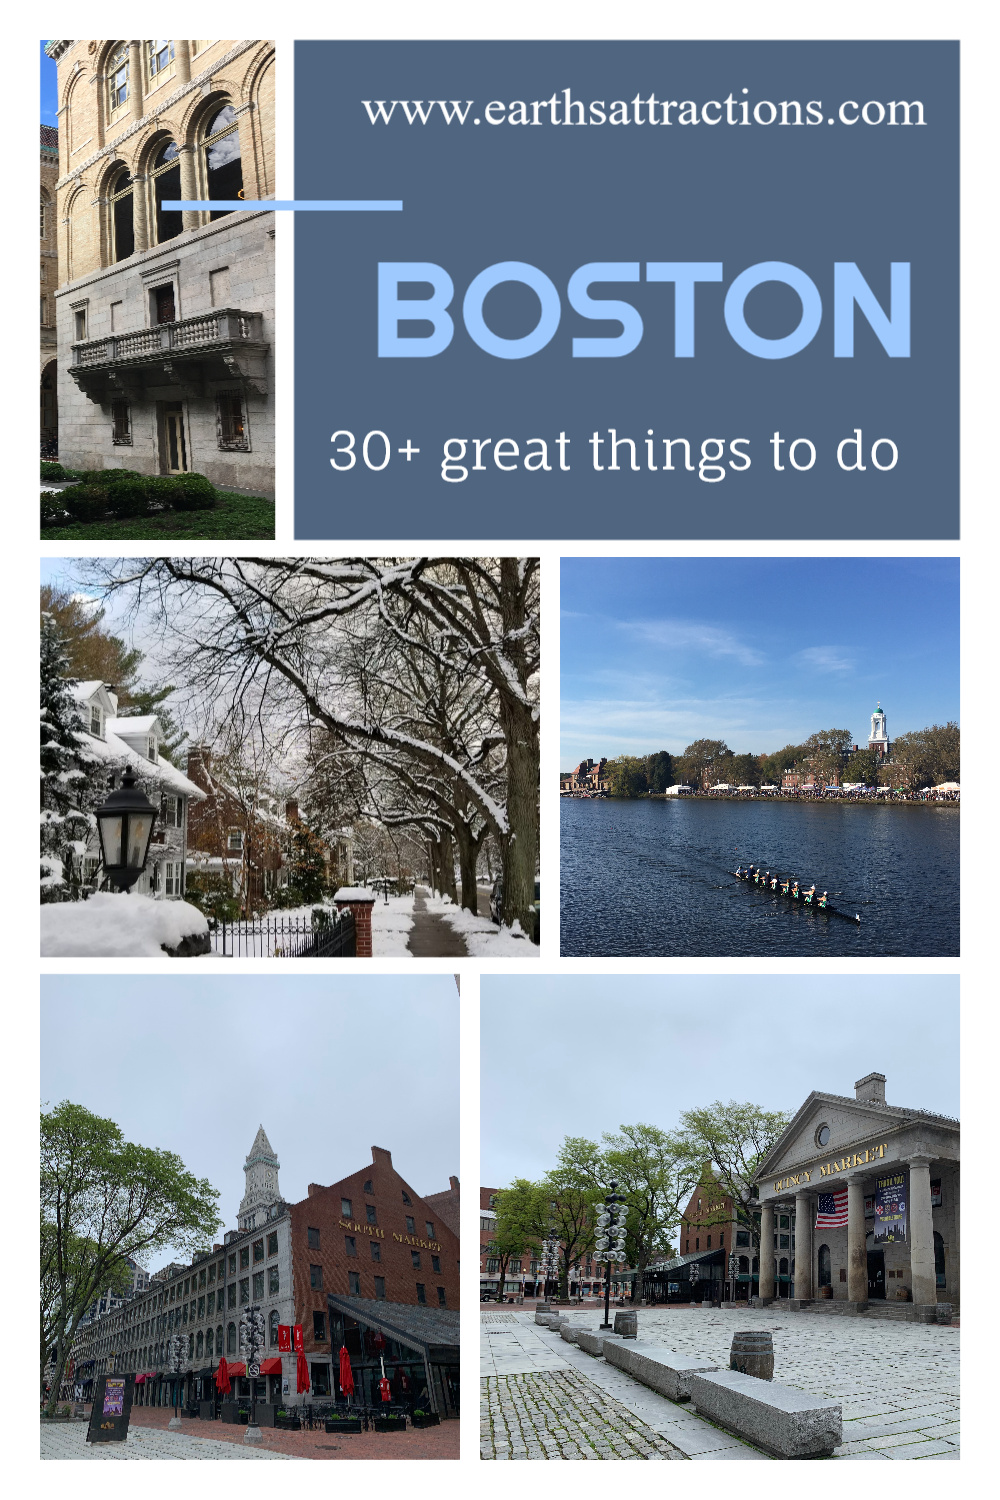 30 Great things to do in Boston USA. This boston travel blog covers everything you need to know about Boston: from the Boston weather to Boston restaurants to Boston landmarks, Boston hotels, and beyond! Read the article now! #boston #bostonguide #usatravel #bostonthingstodo #earthsattractions #traveldestinations #northamerica